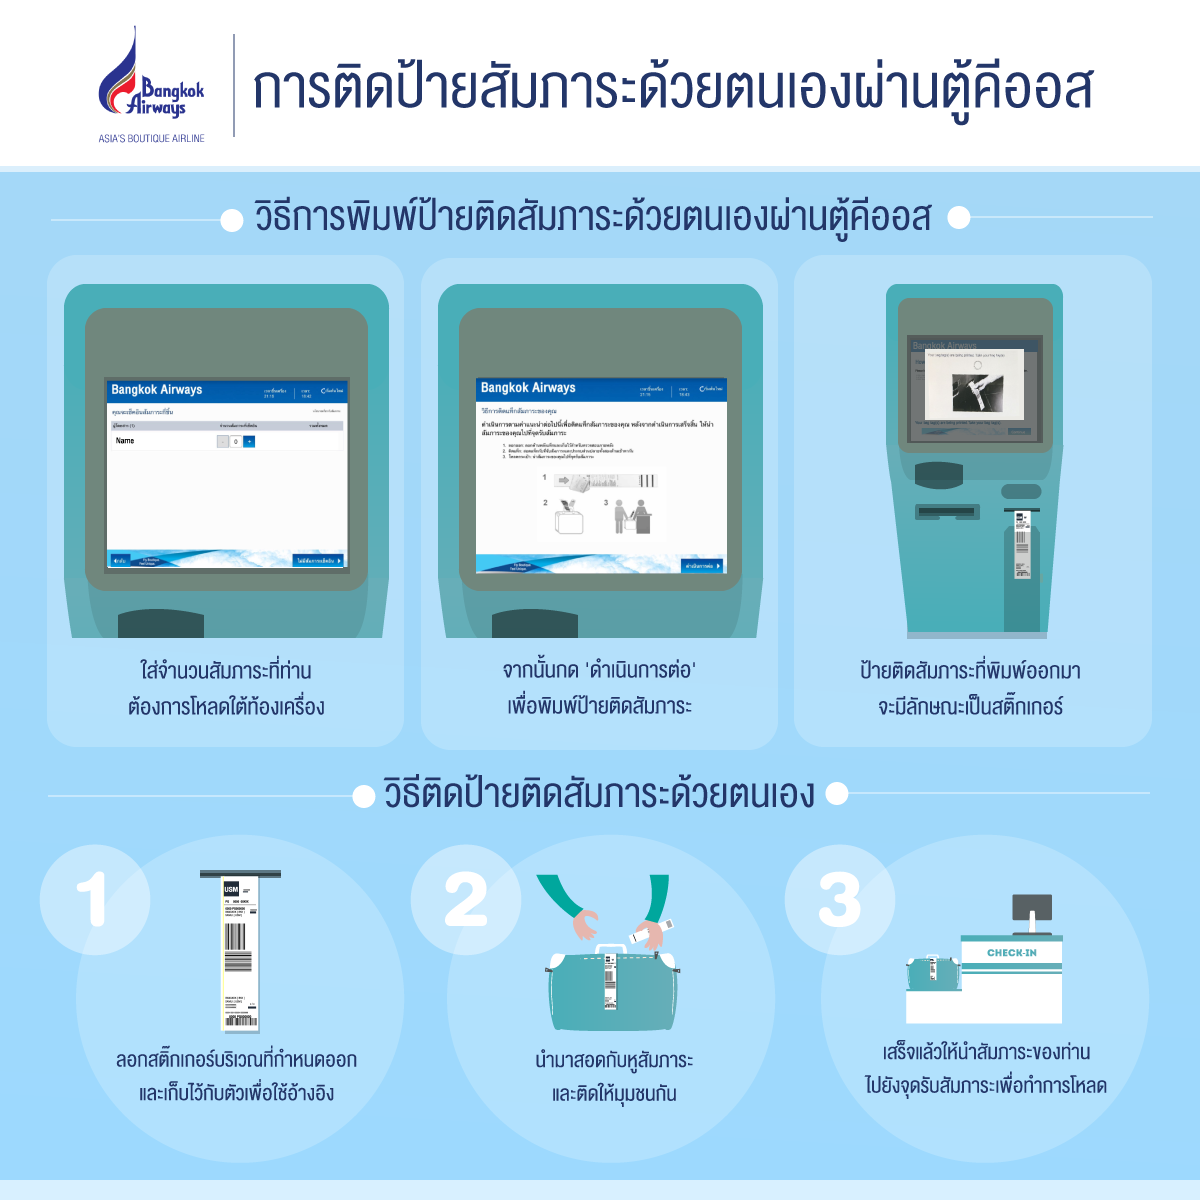 Bangkok airways online check-in